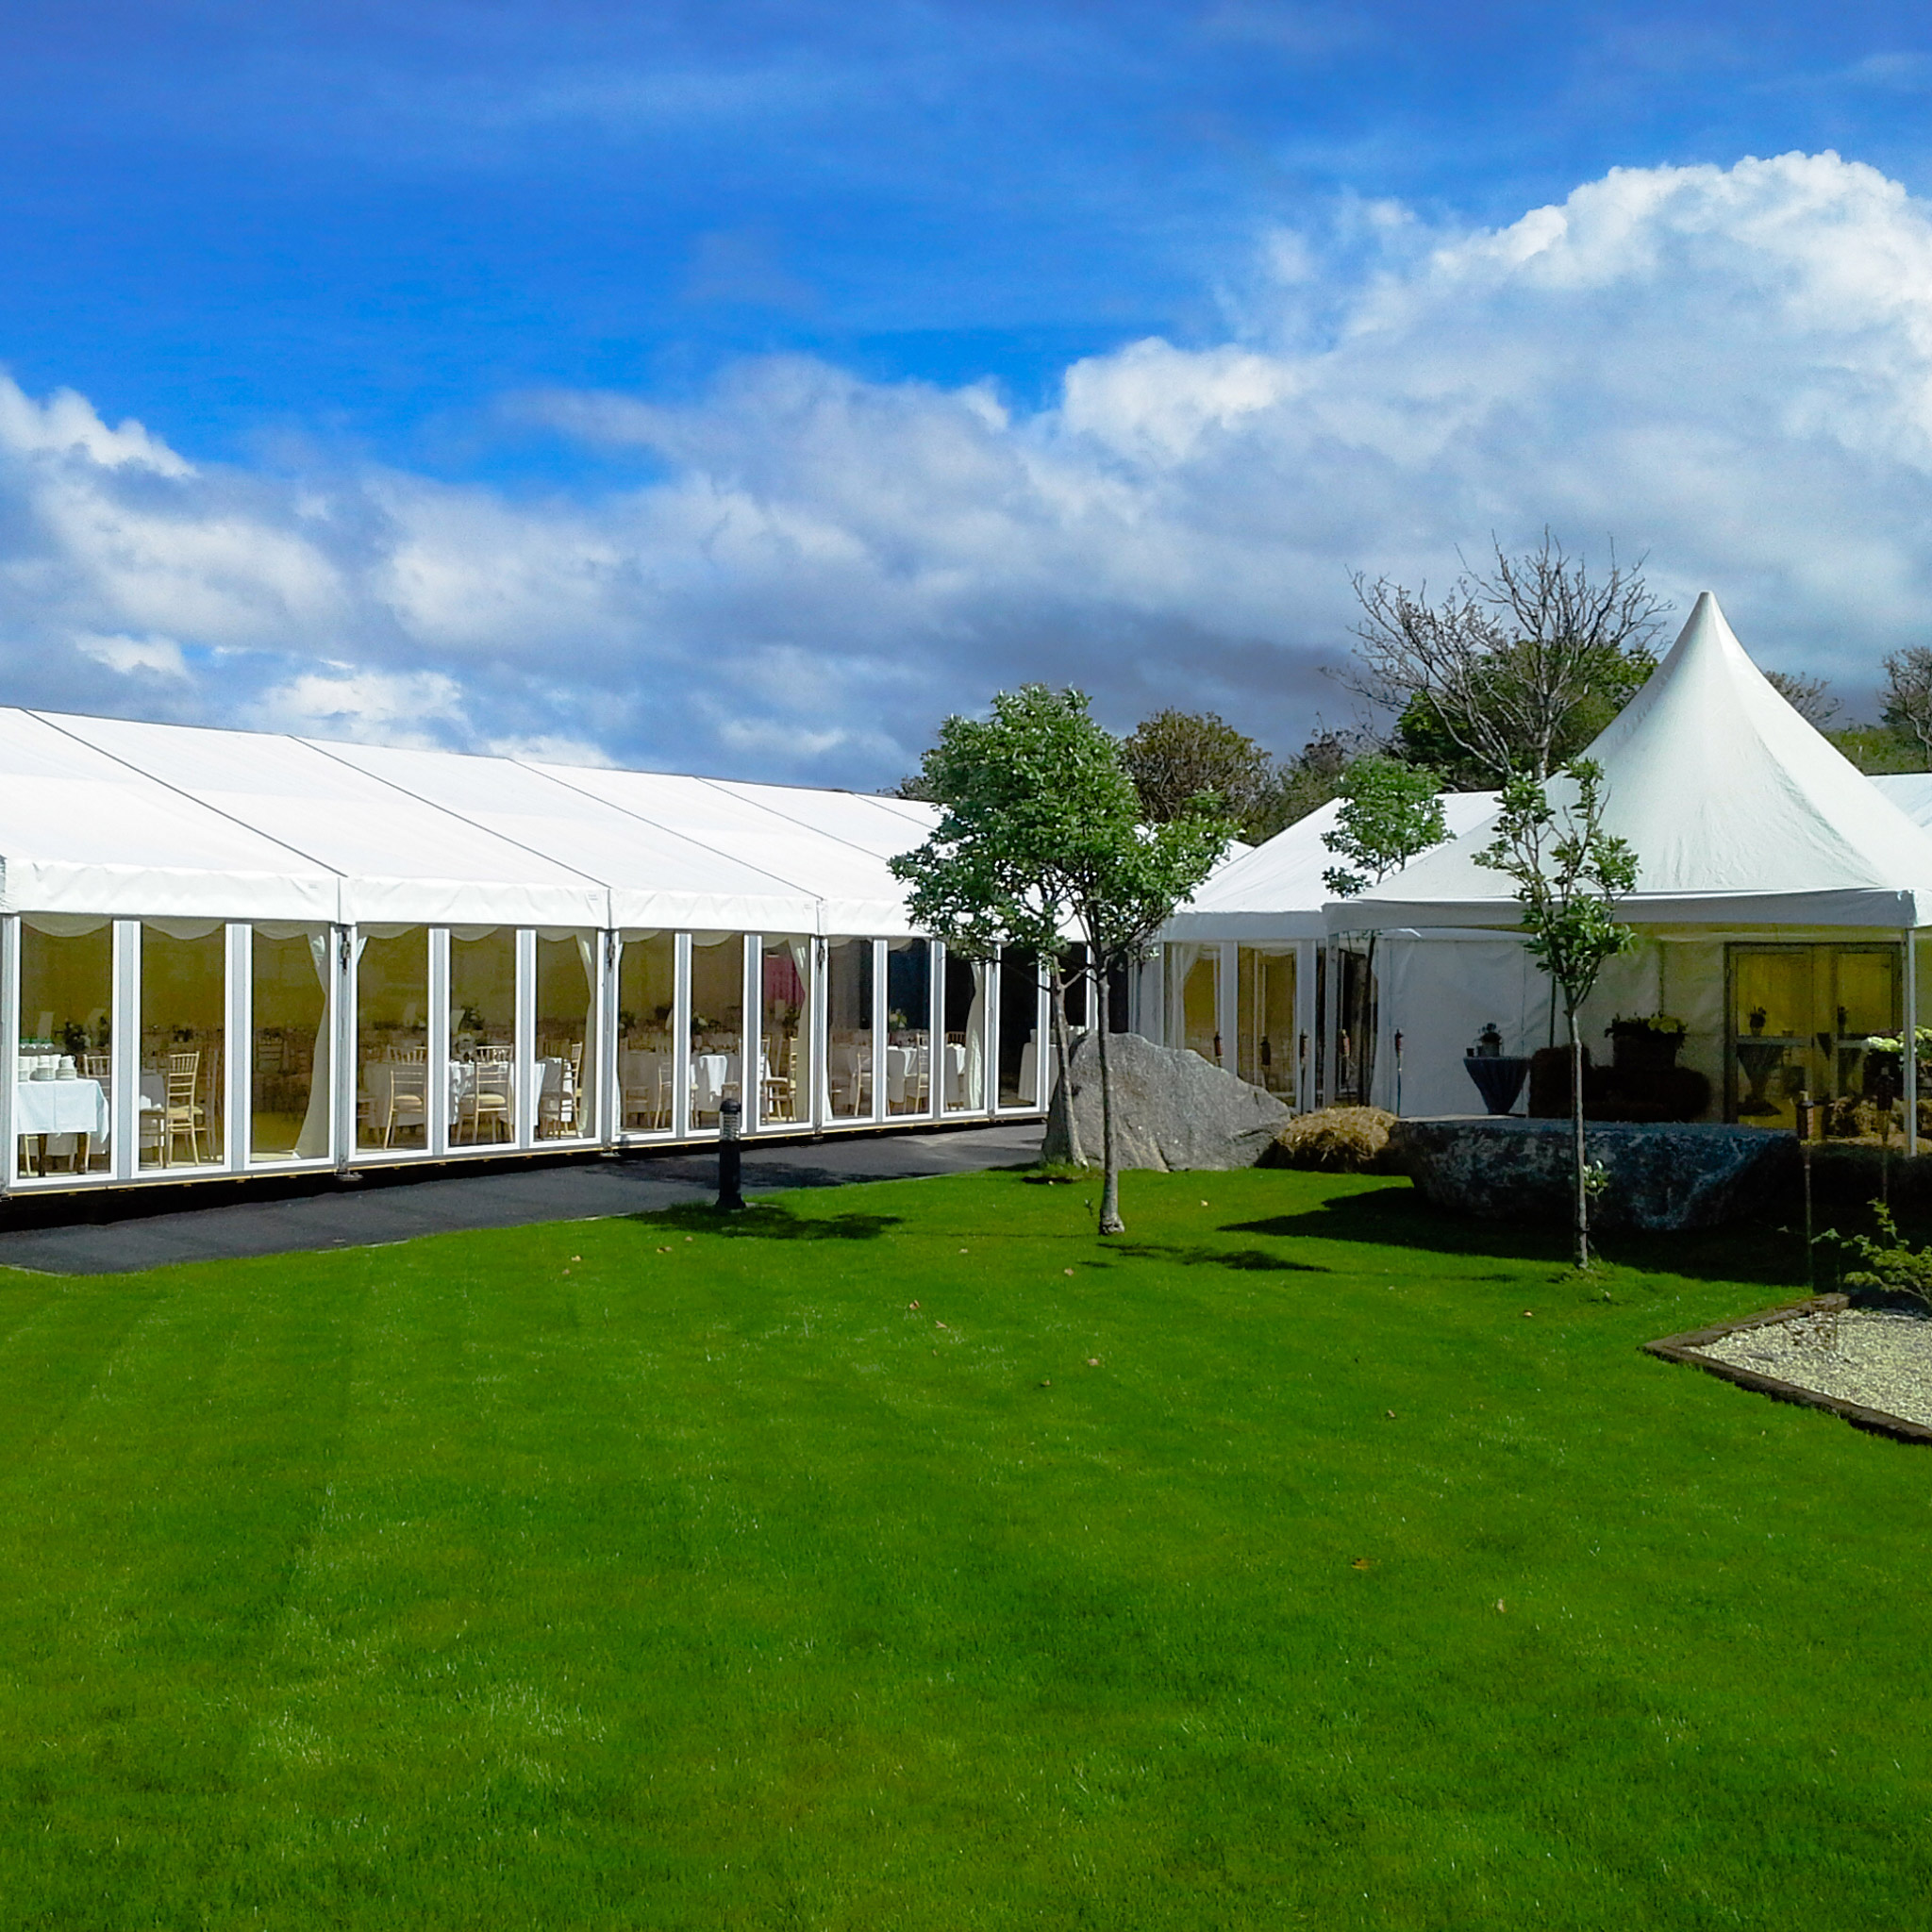 A wedding marquee adjacent to green grass photographed in daylight